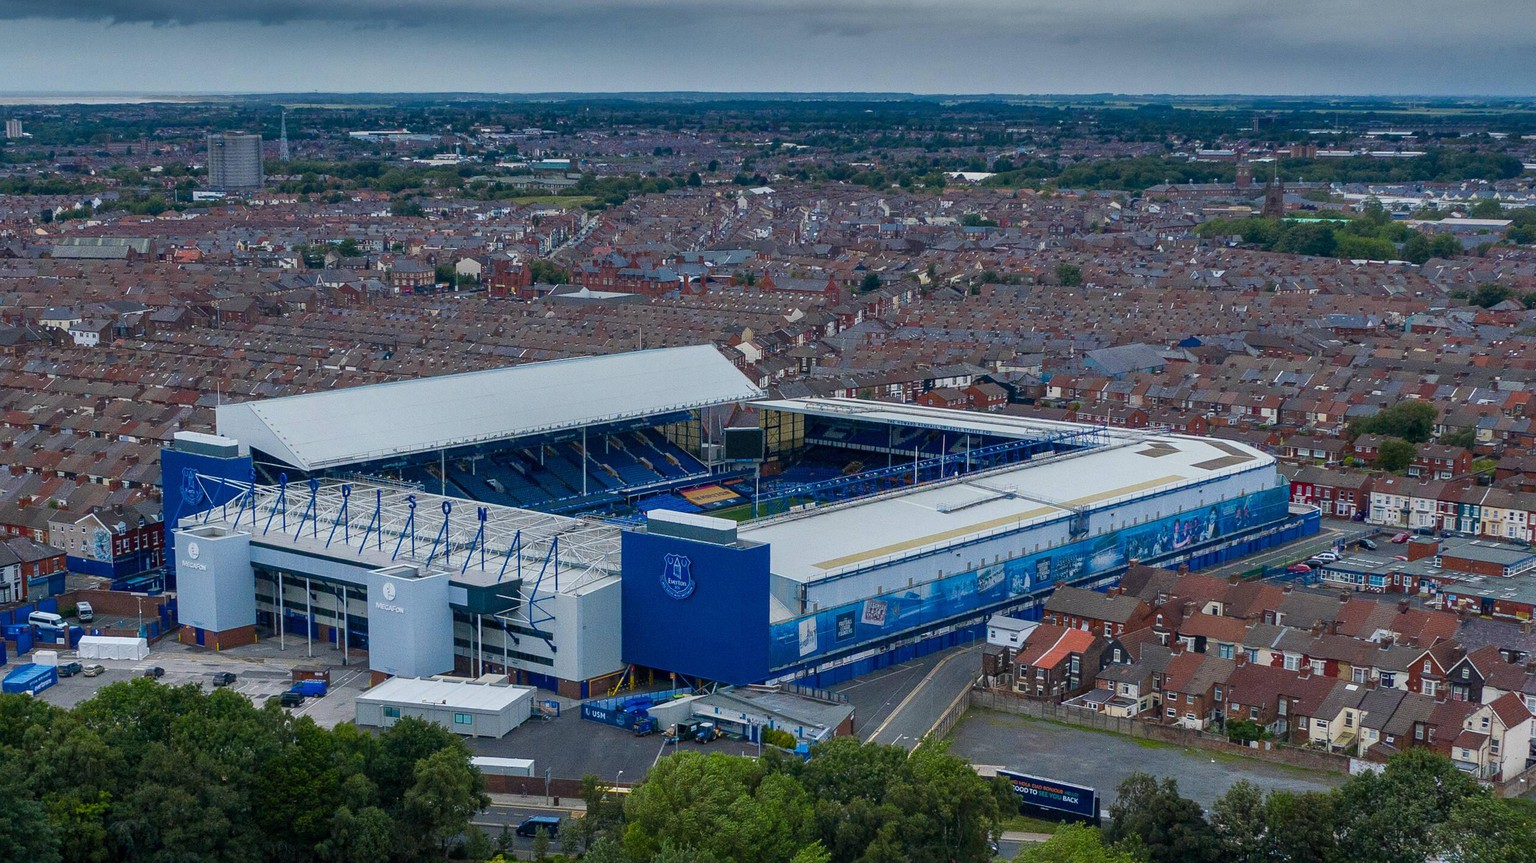 Aerial photograph of Goodison Park Stadium home of English Premier League team Everton at Goodison Park, Liverpool, England on 3 July 2020. PUBLICATIONxNOTxINxUK Copyright: xDavidxHornx PMI-3524-0001